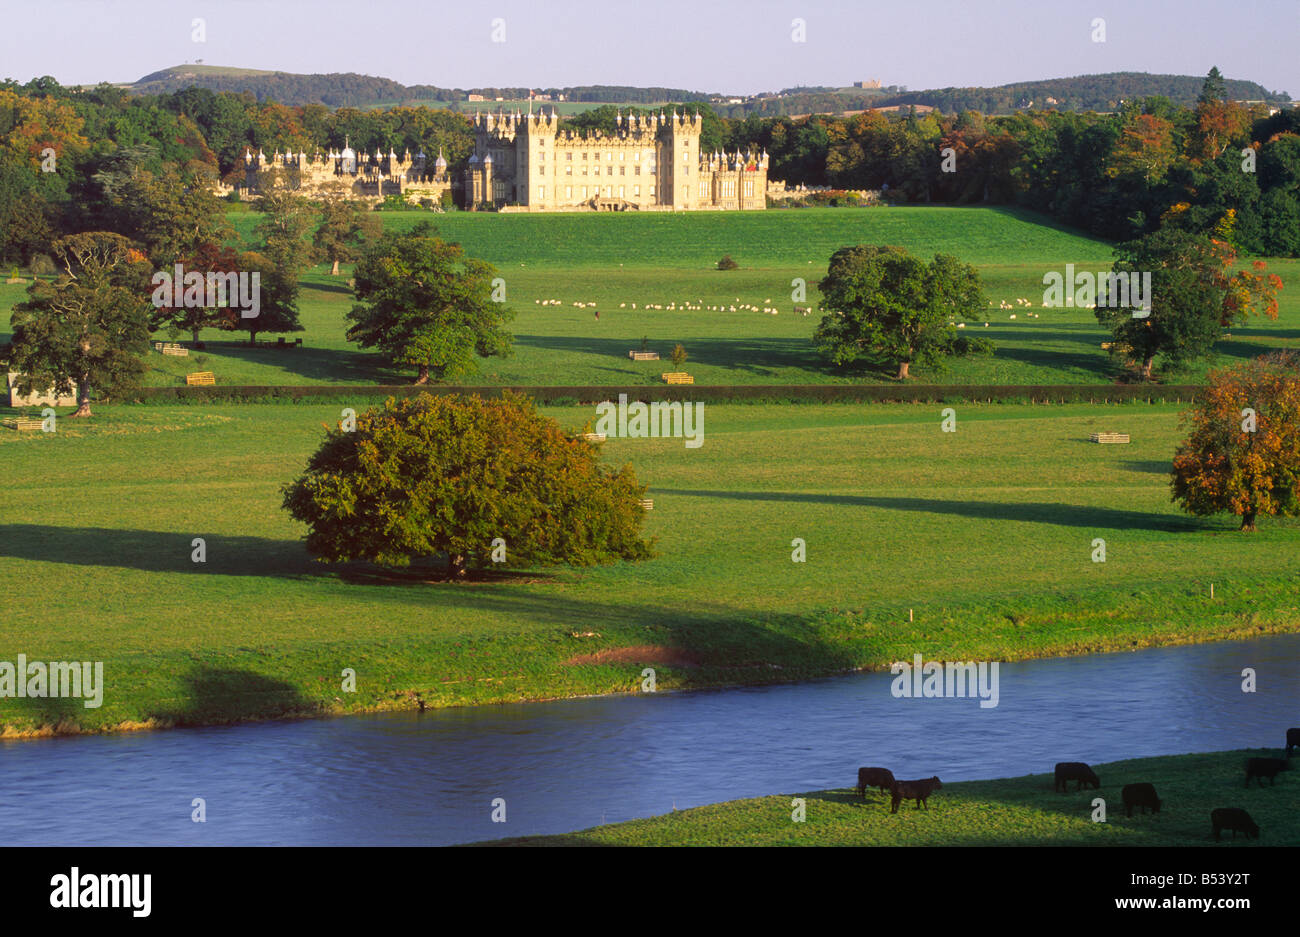 Looking across the River Tweed to Floors Castle from the remains of Roxburgh Castle near Kelso in the Scottish Borders - Stock Image